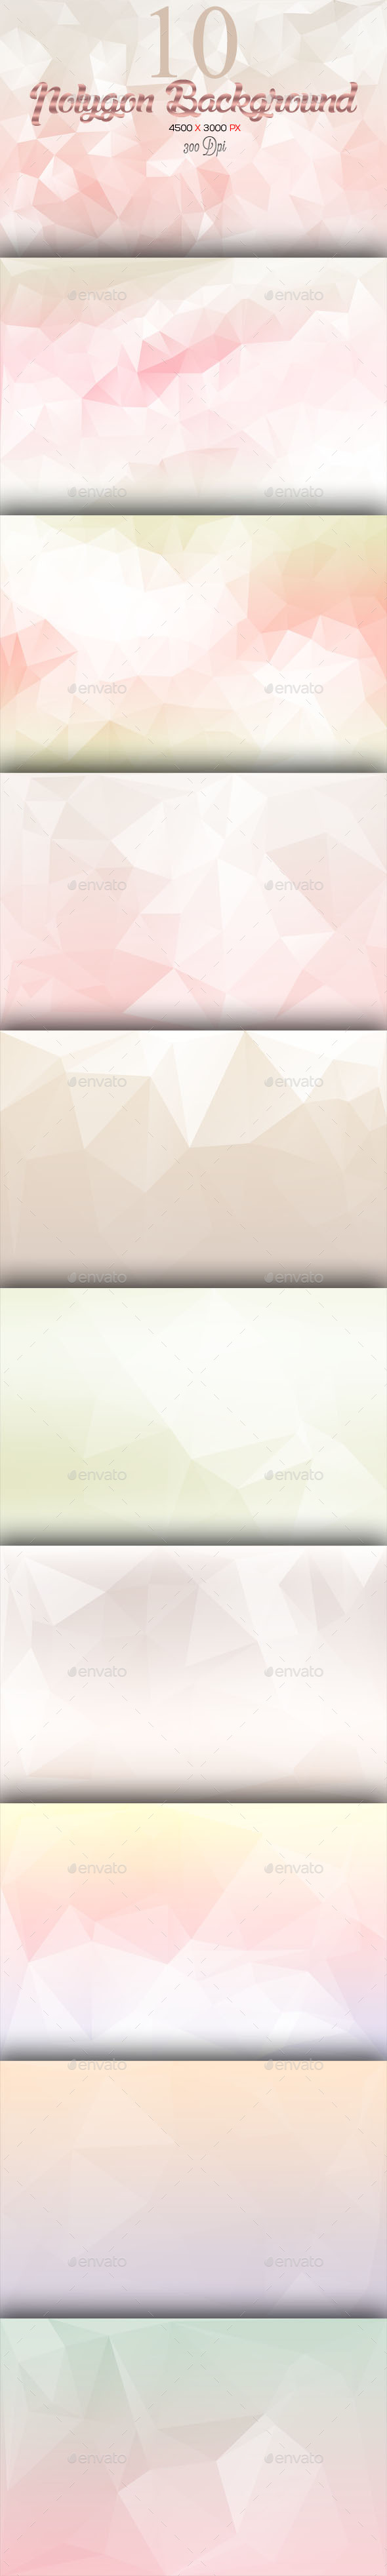 GraphicRiver 10 Polygon Background Part 7 10103473